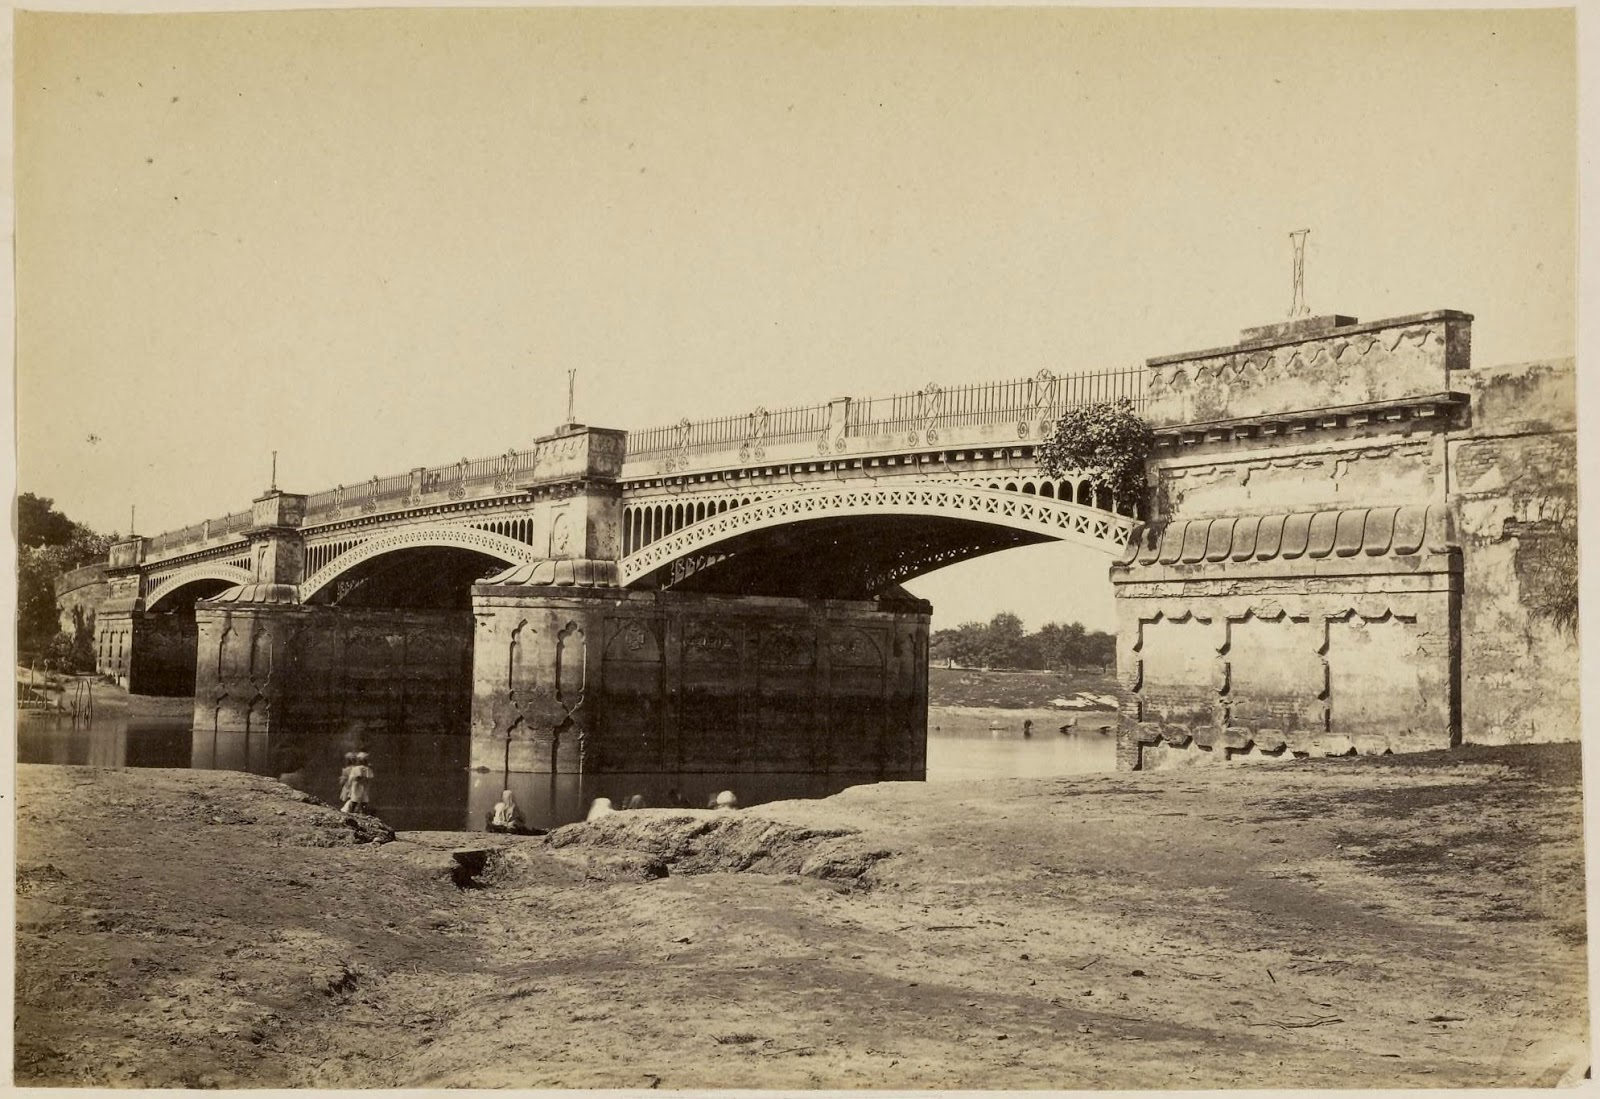 Iron bridge lucknow c1870 39 s old indian photos for Architecture design for home in lucknow